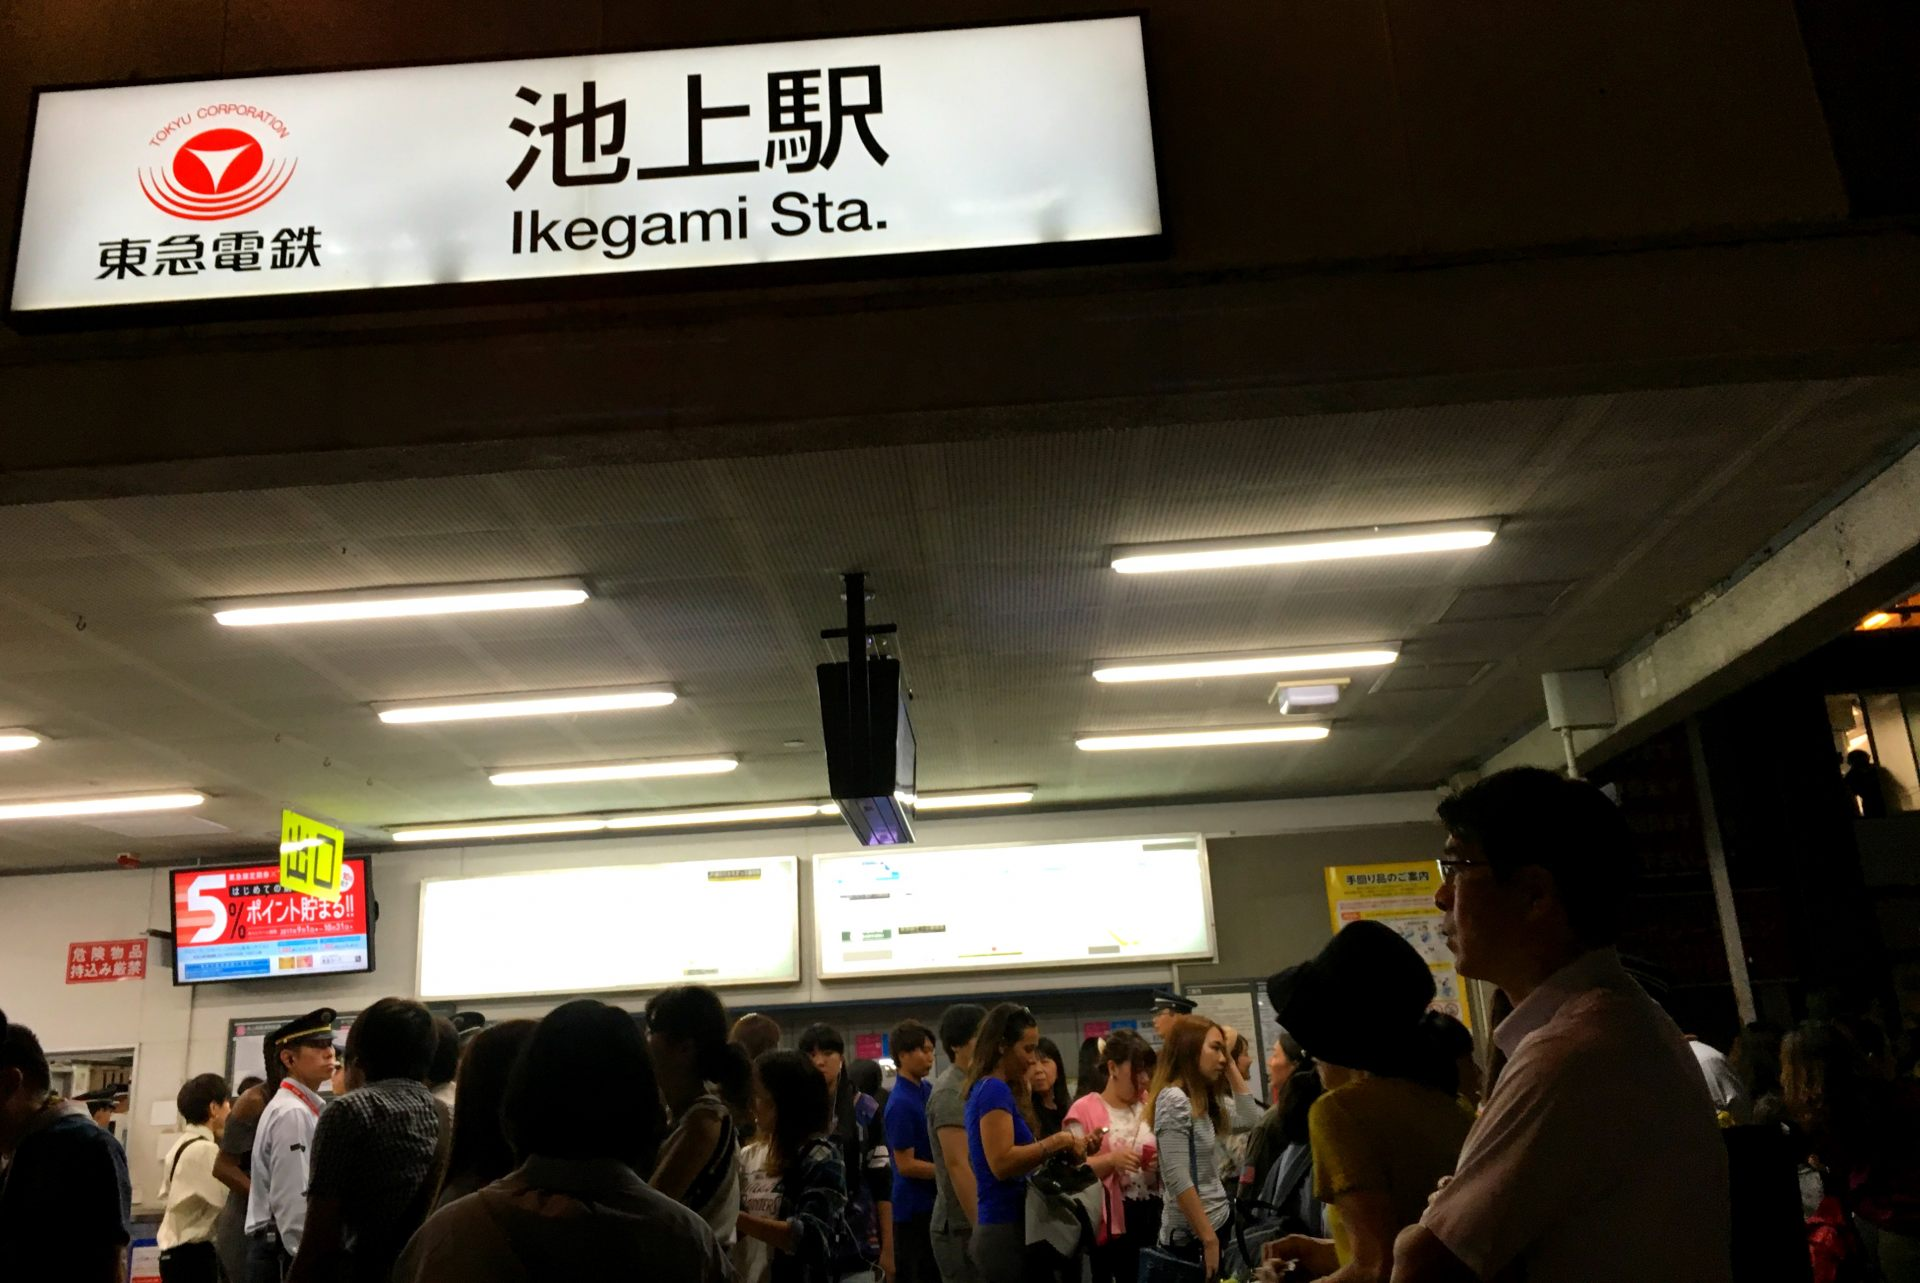 Extremely crowded Ikegami Station